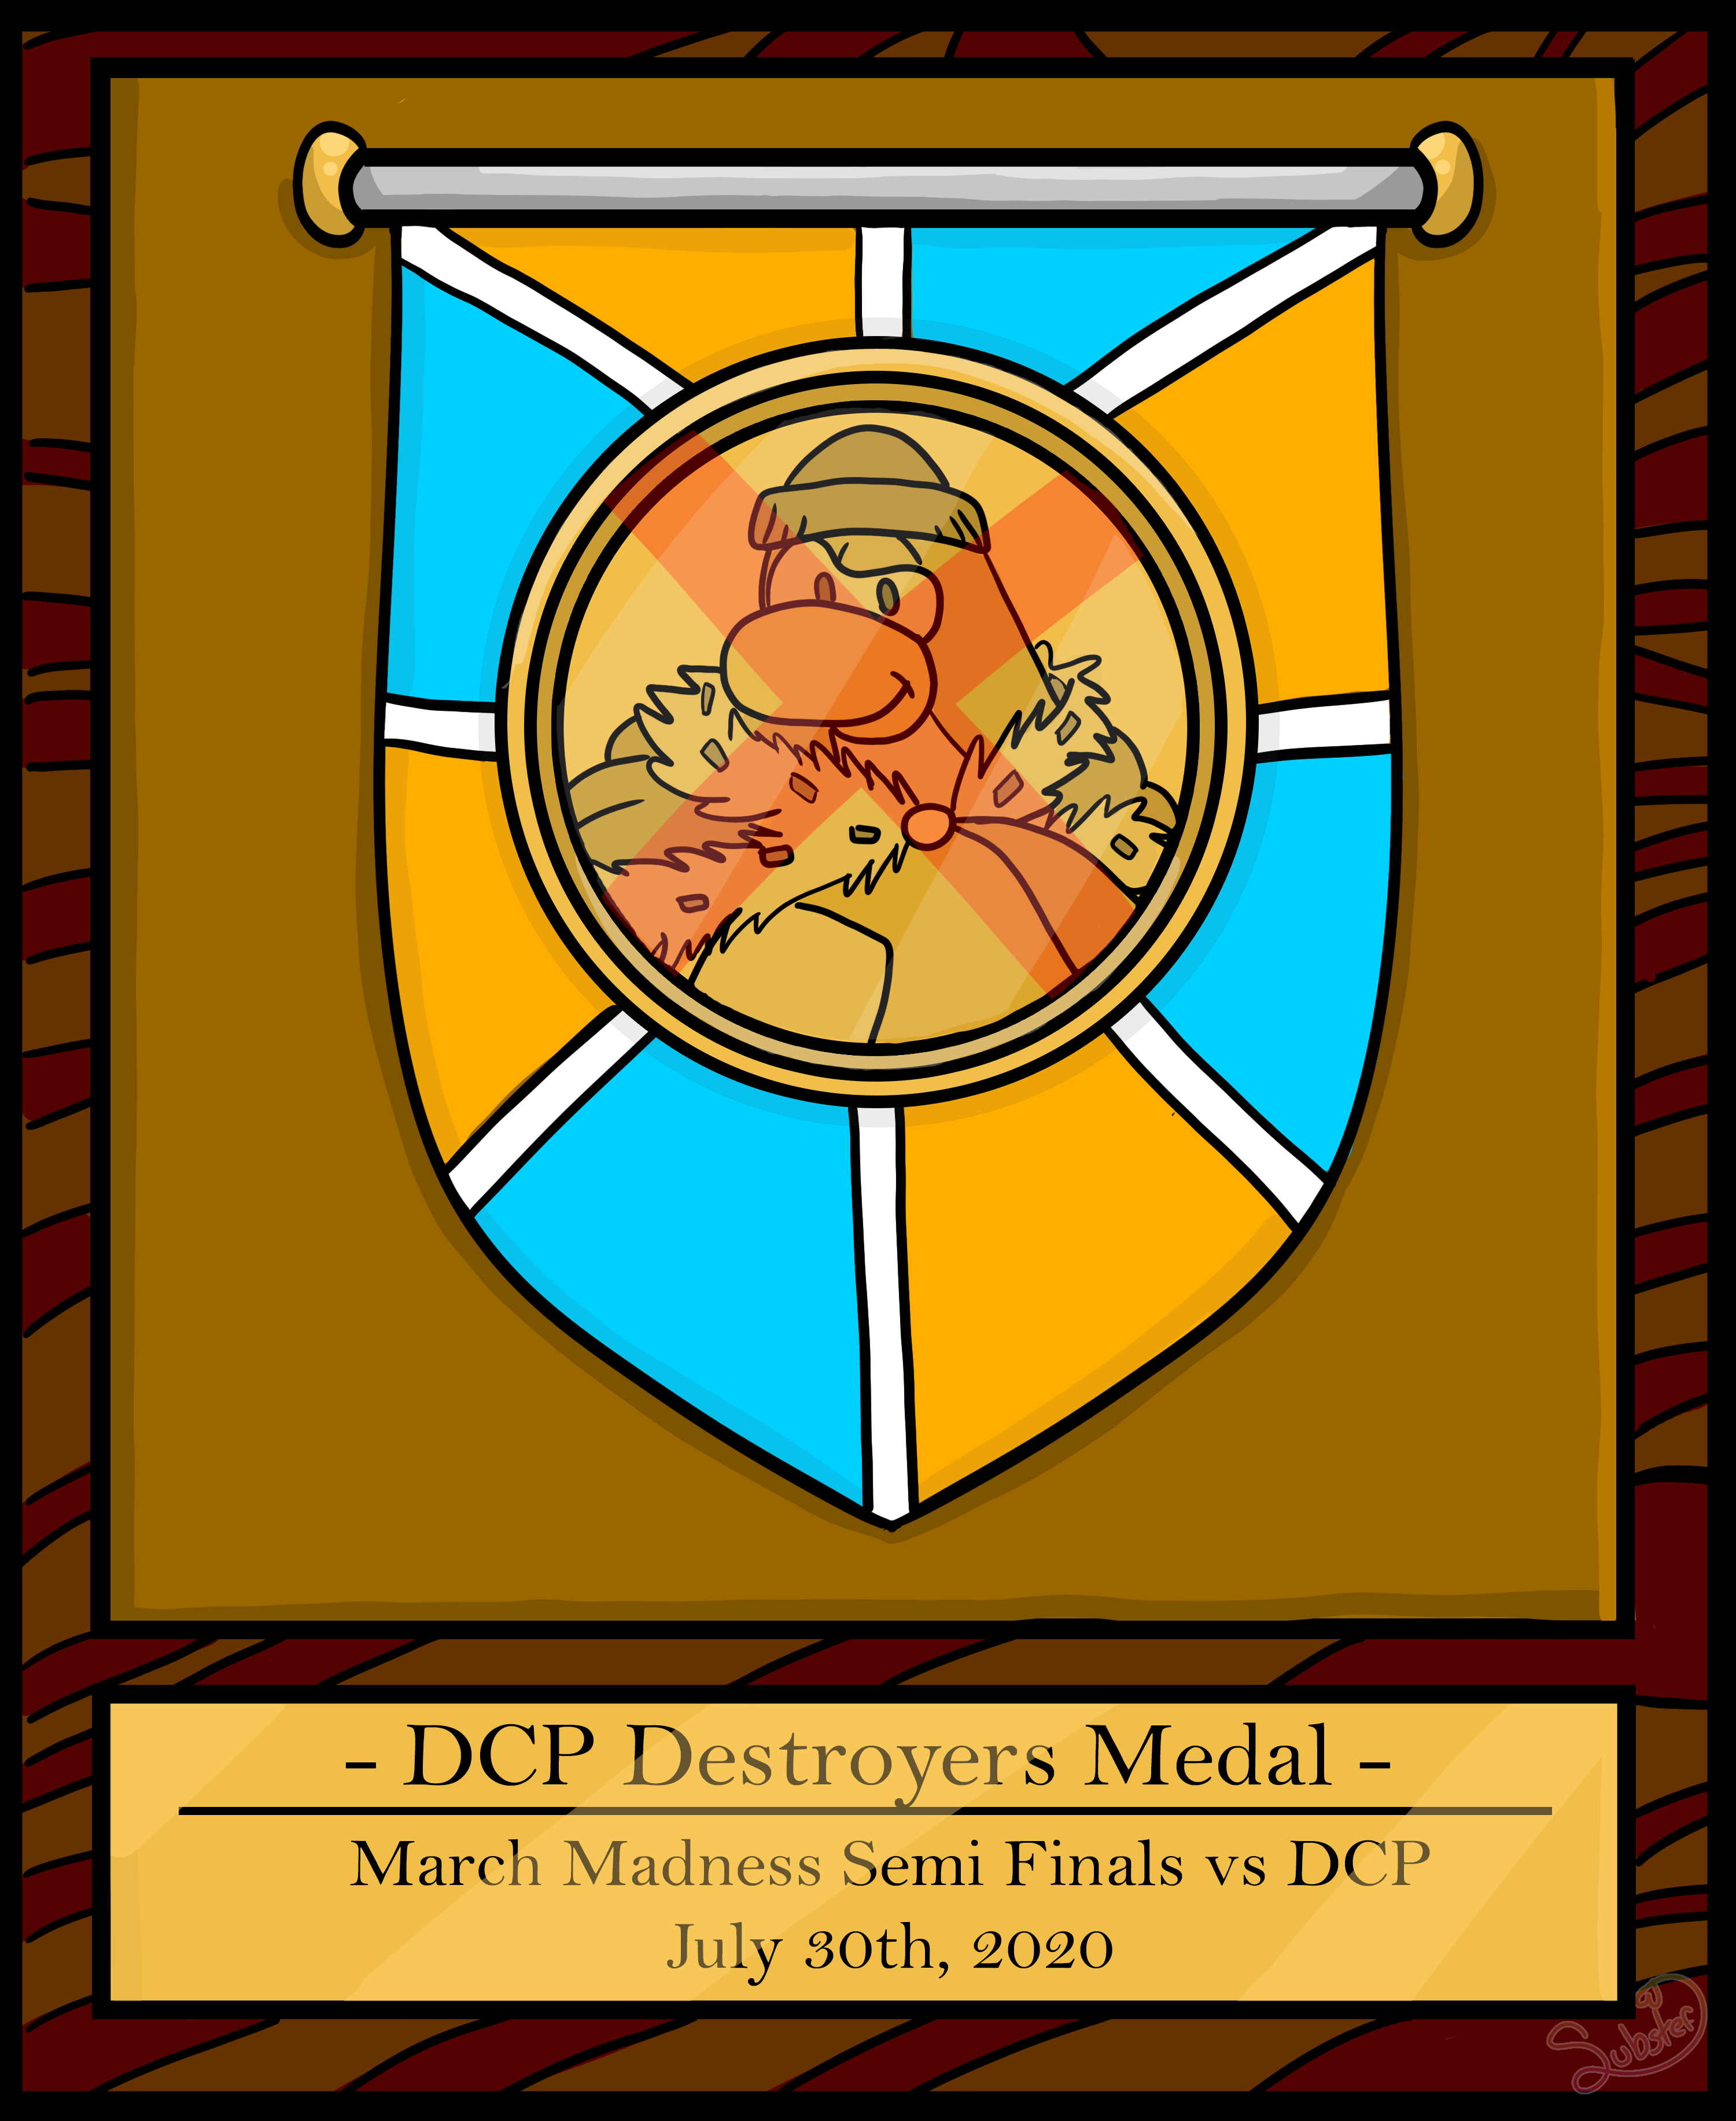 dcp_destroyers_medal